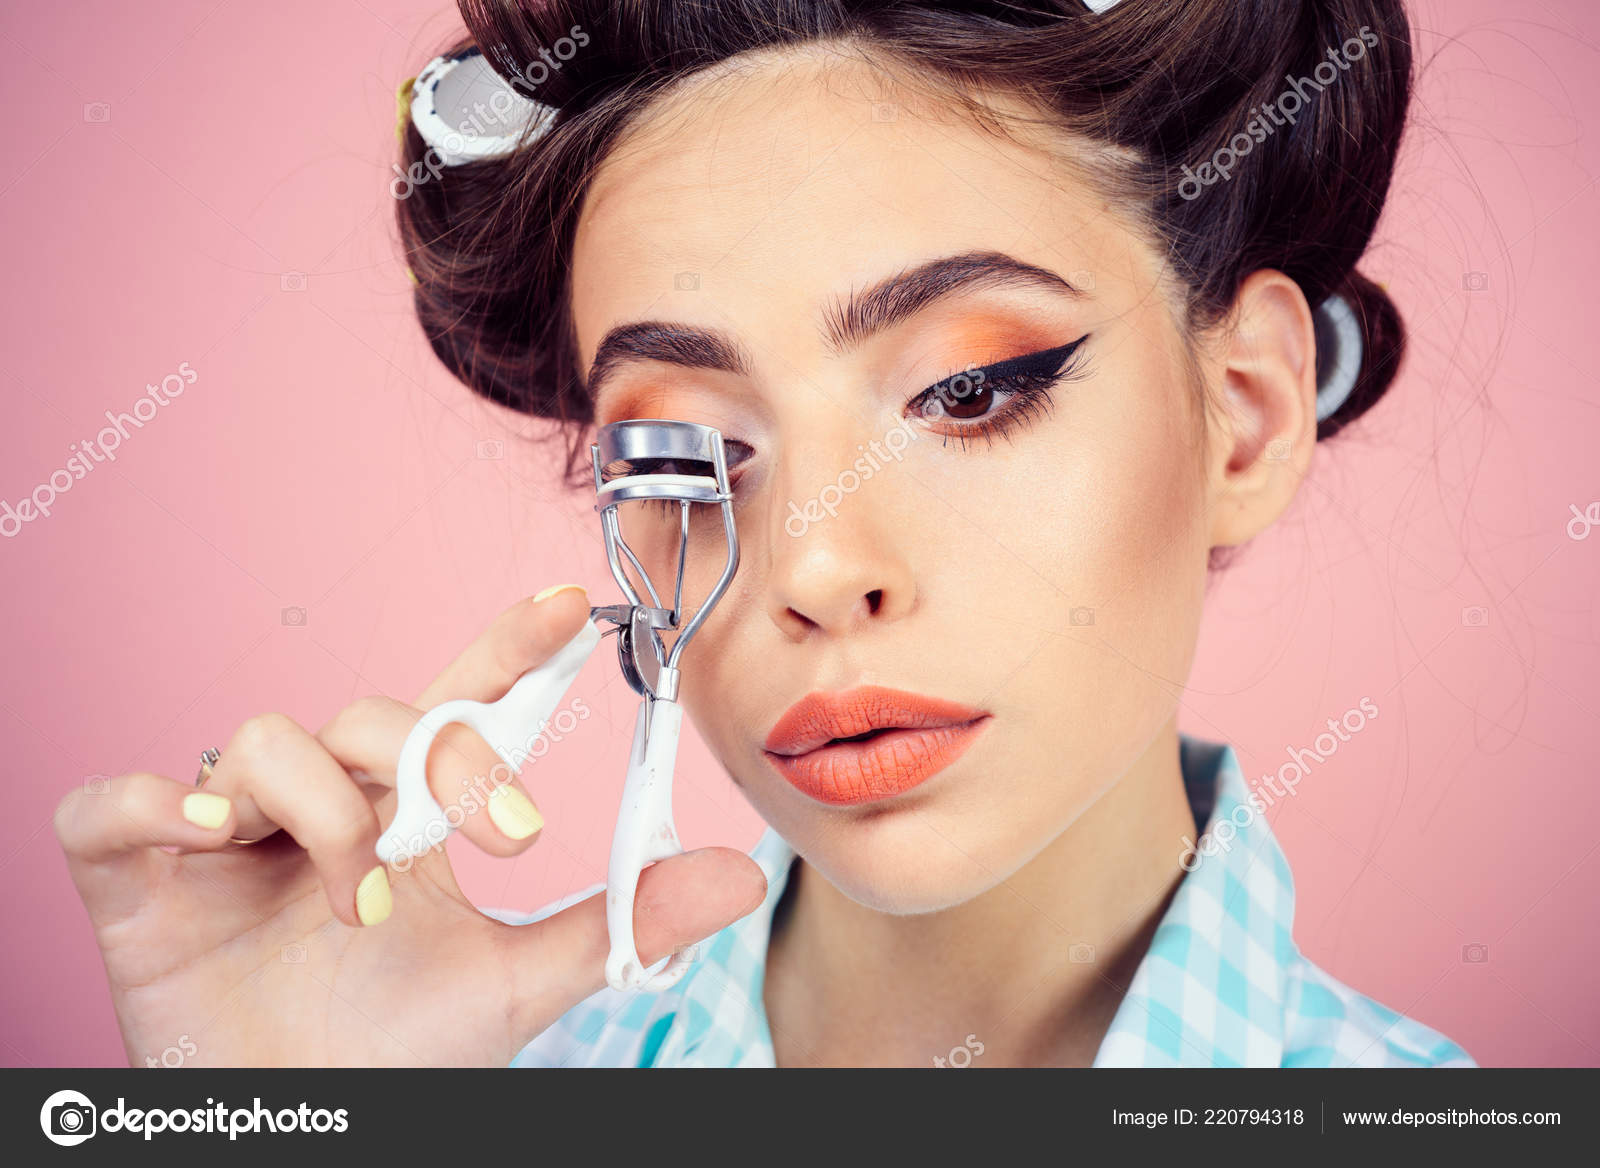 Share your vintage pin up makeup and hair join